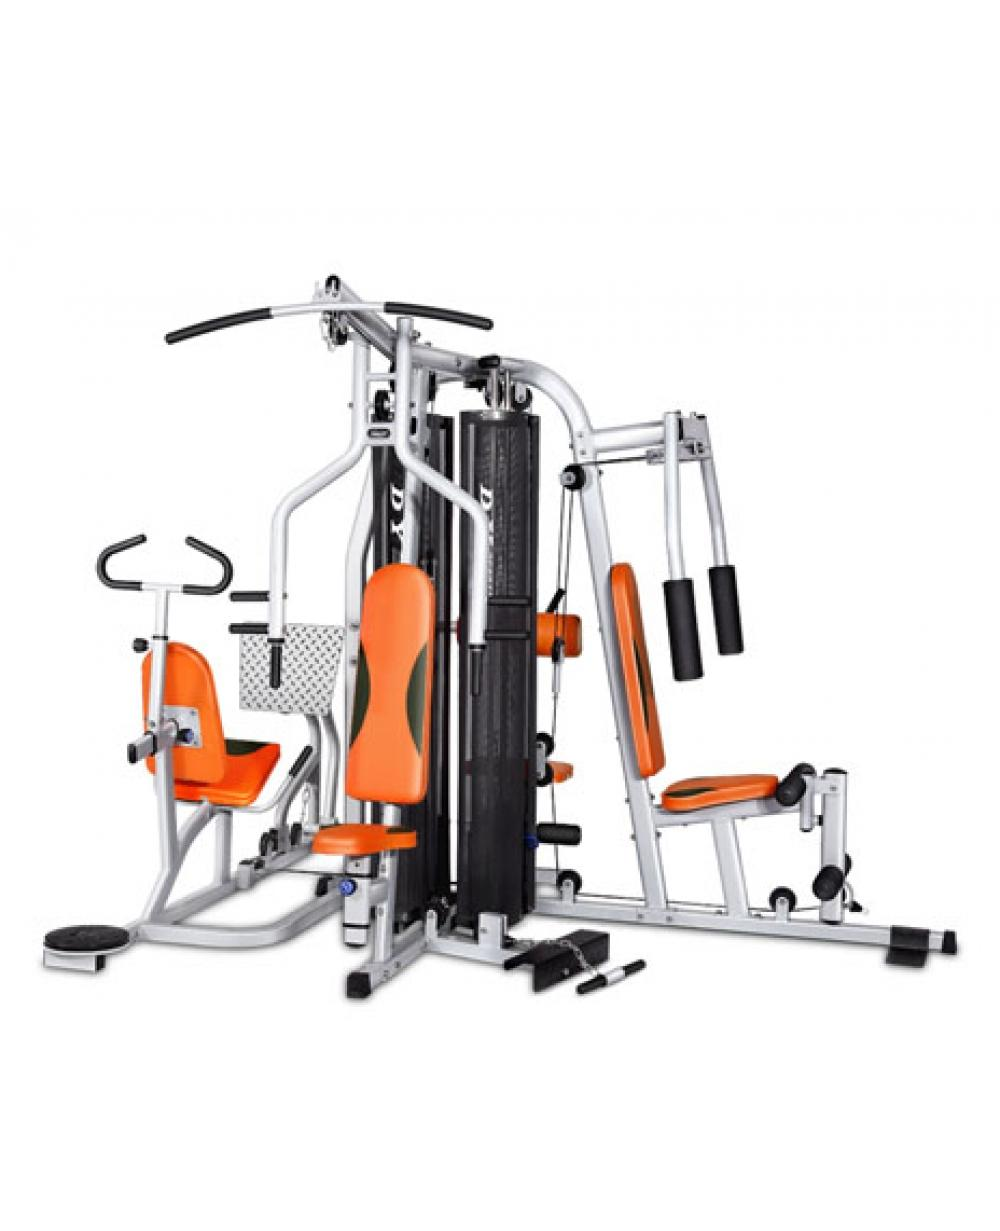 f8d21b4dfc2419 Buy Fitness Accessories Shopping Online At Best Price From Daraz.com.np